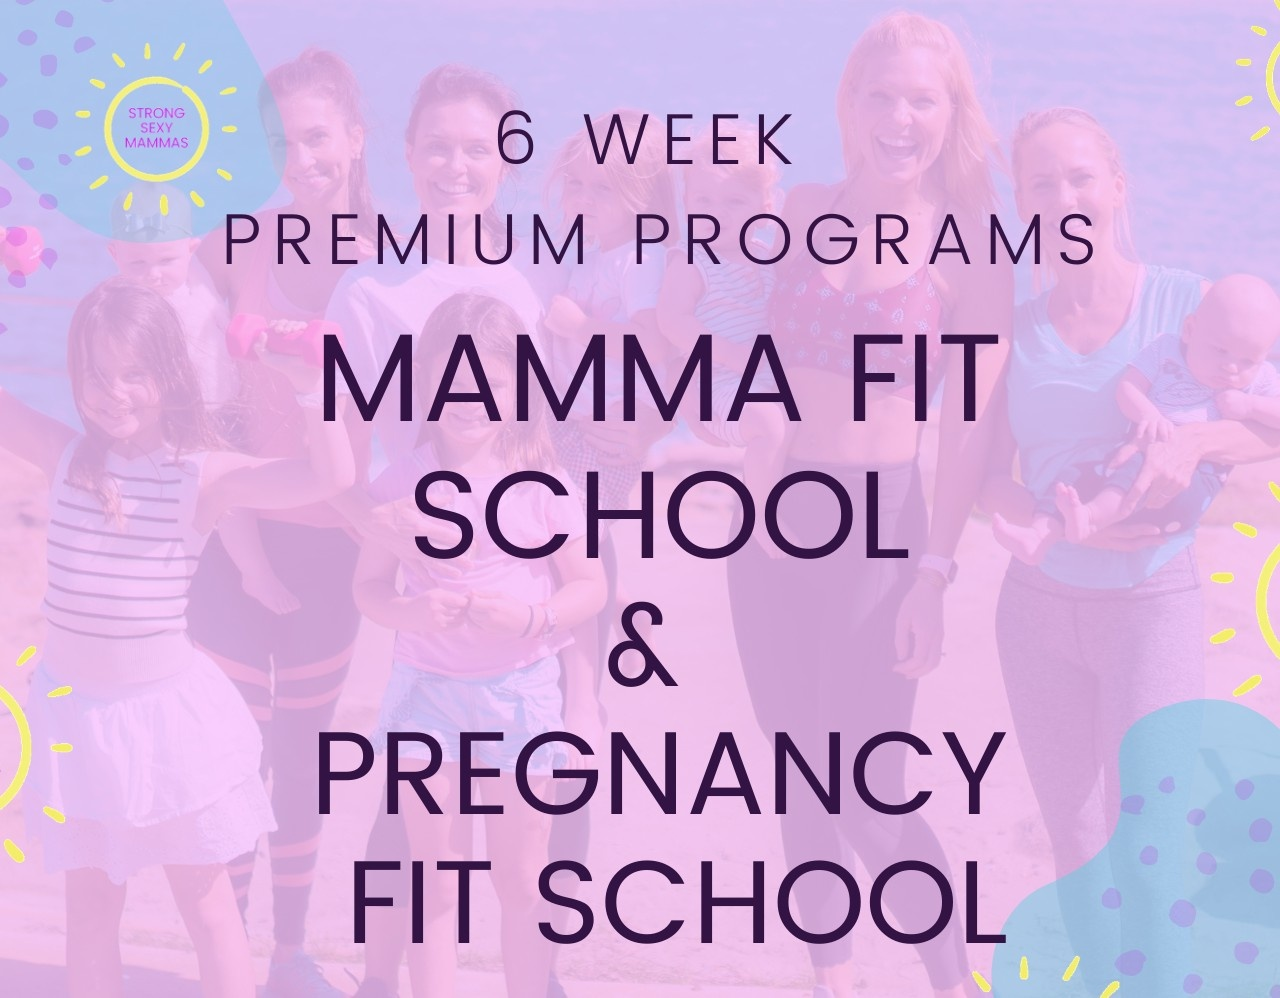 Move Your Bump - Strong Sexy Mammas -Anna Kooiman